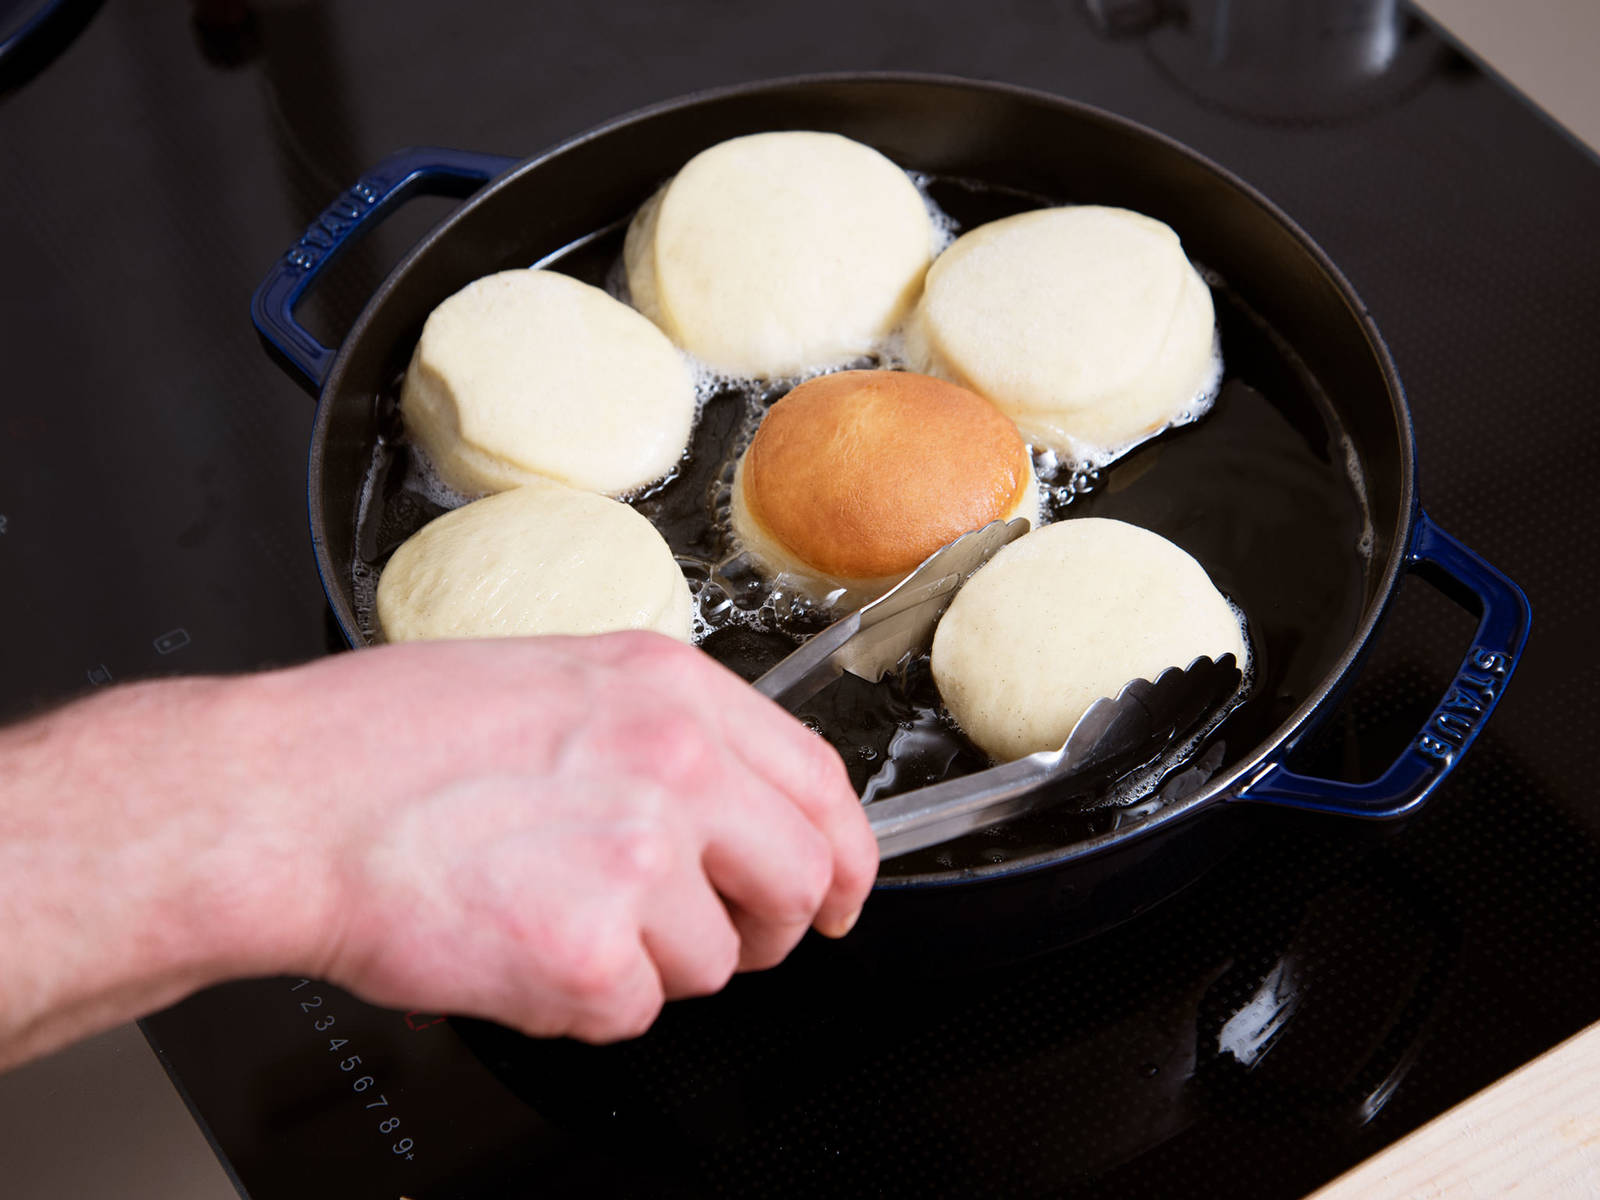 Add oil to a pot and heat until it reaches 170°C/340°F. Carefully add dough circles one by one, then close lid and let fry for approx. 2 – 3 min. Flip carefully and let fry on the other side for approx 2 – 3 min. more. Remove doughnuts from pot and drain on a paper towel-lined plate.